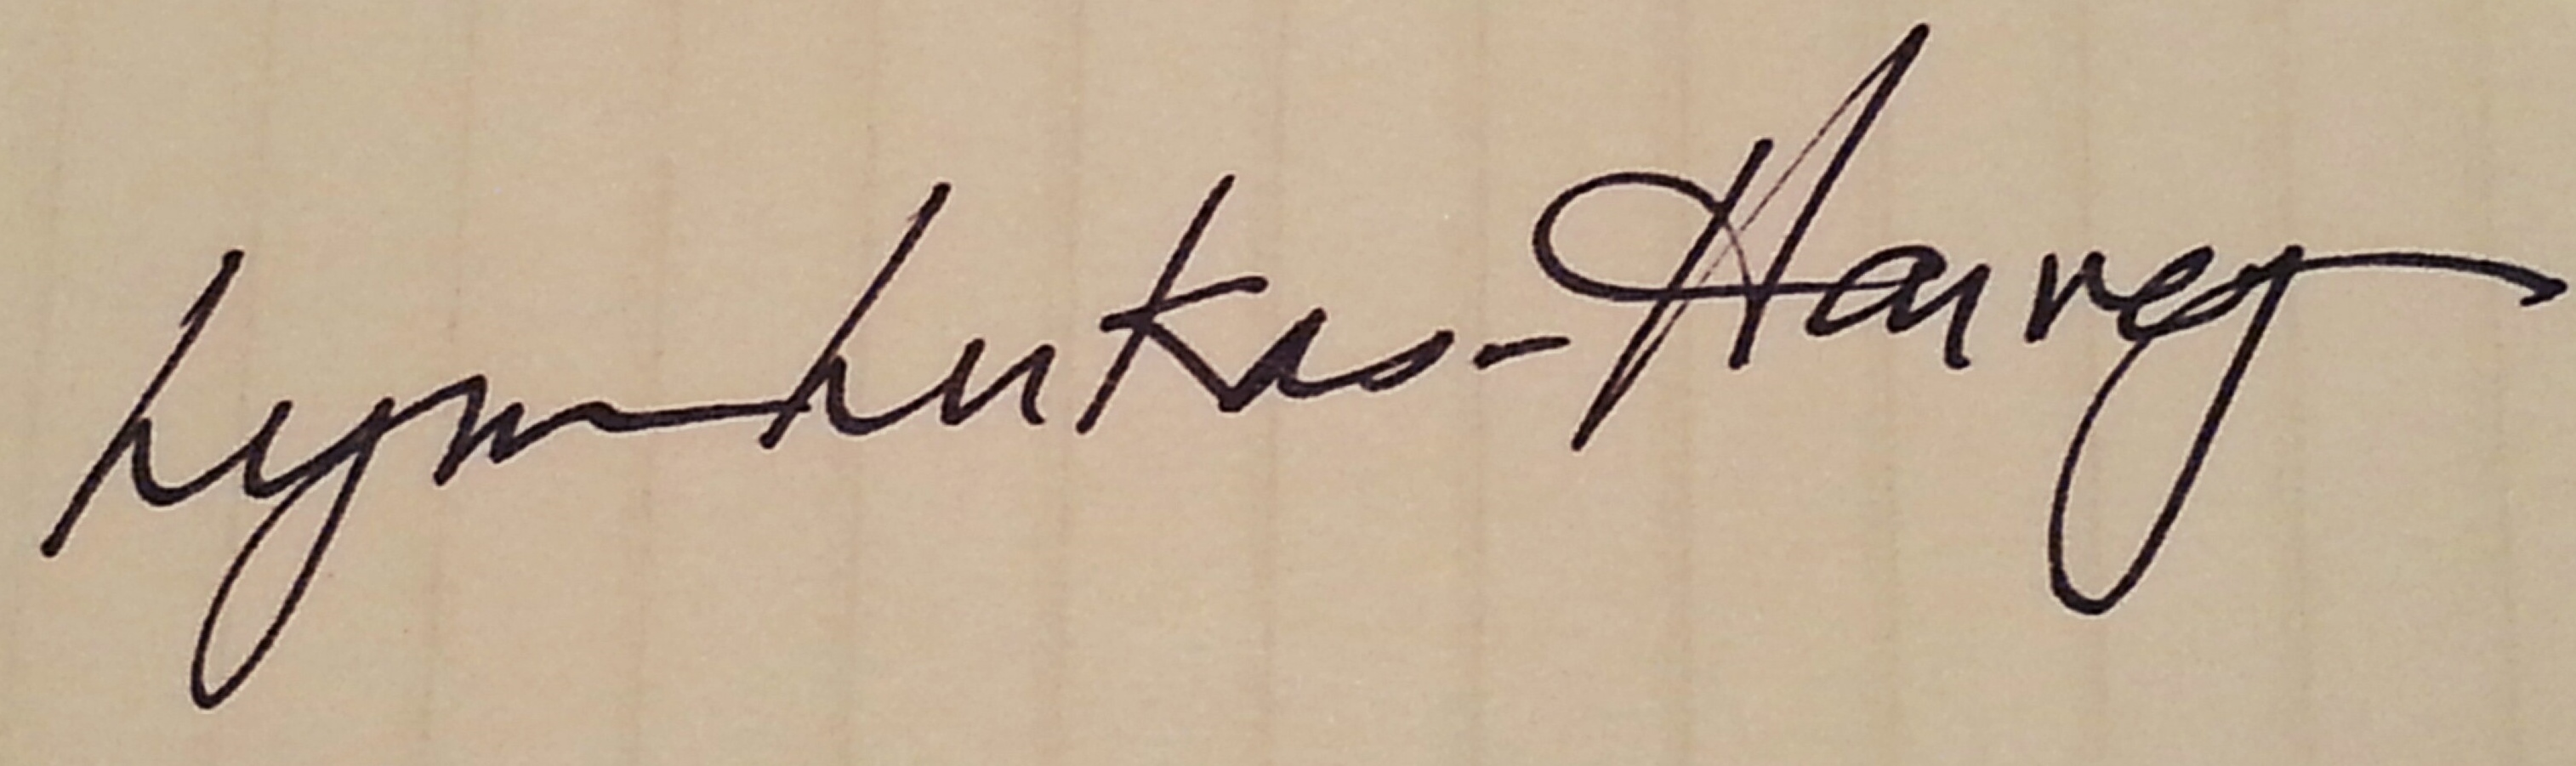 Lynn Lukas-Harvey's Signature